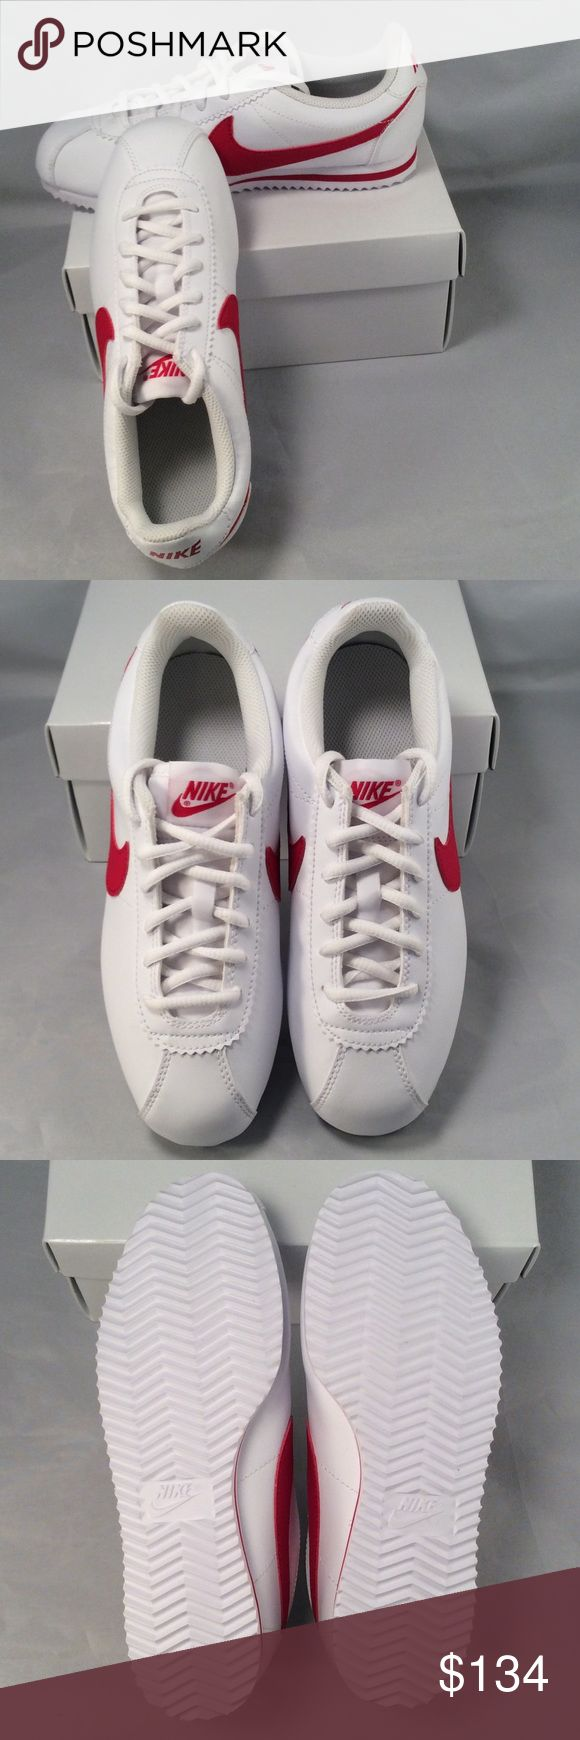 Nike Kids Cortez (GS) White Red Running Shoe 4.5 NWOB and never worn. Kids Size 4.5 youth running shoes.  Indulge in track-running nostalgia with the Nike Cortez shoe. Nike Shoes Sneakers